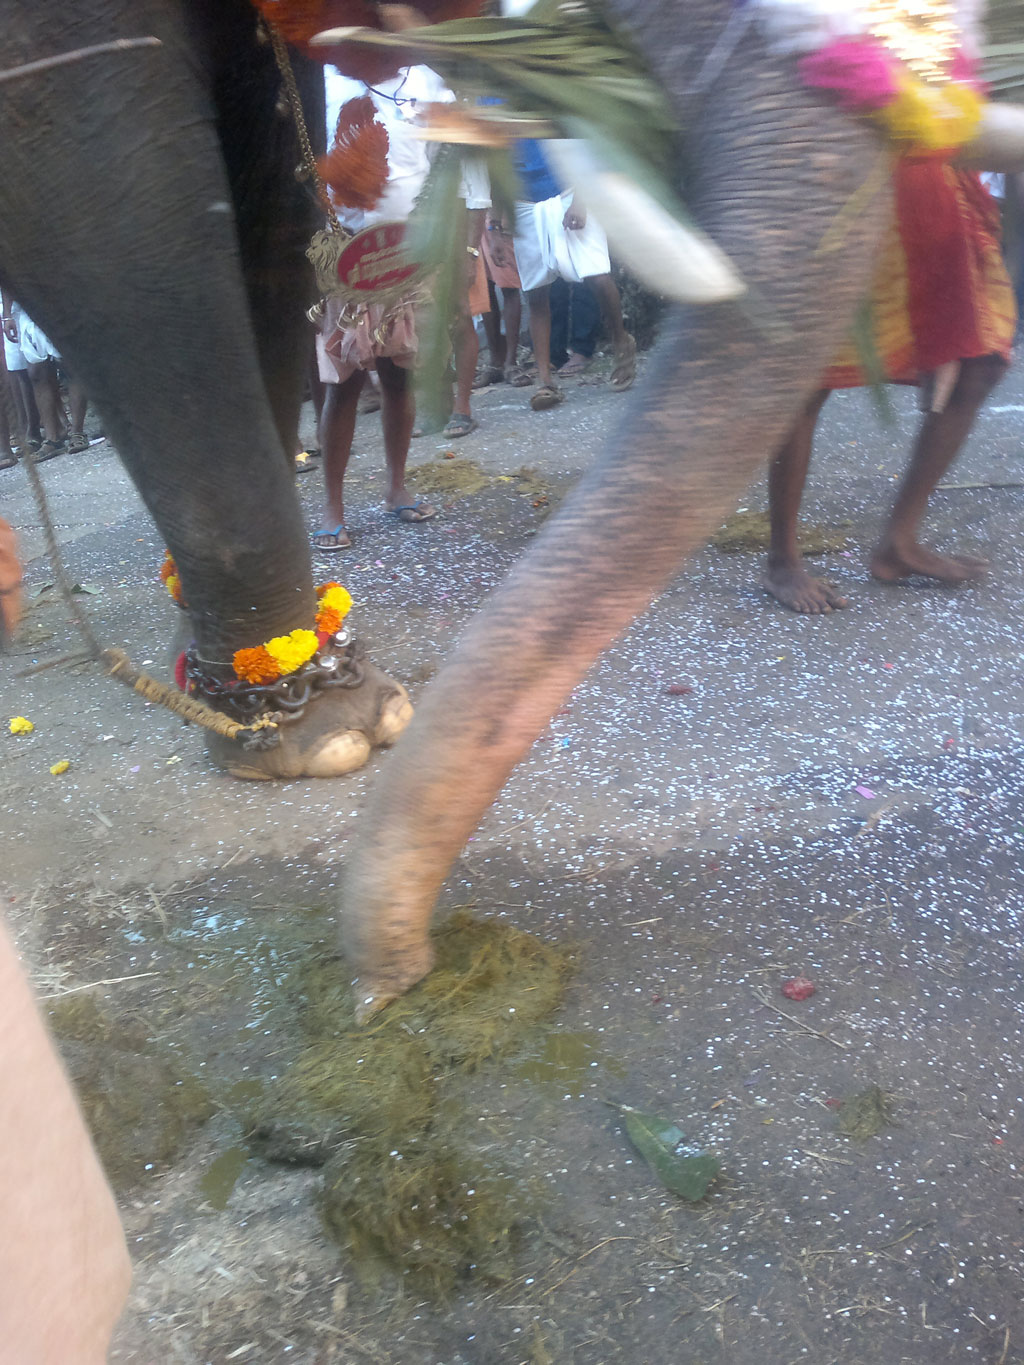 A mobile phone image provided by Heritage Animal Task Force shows an elephant in musth being used in a procession in Kerala. Chains have been used around the elephant's foot to suppress musth